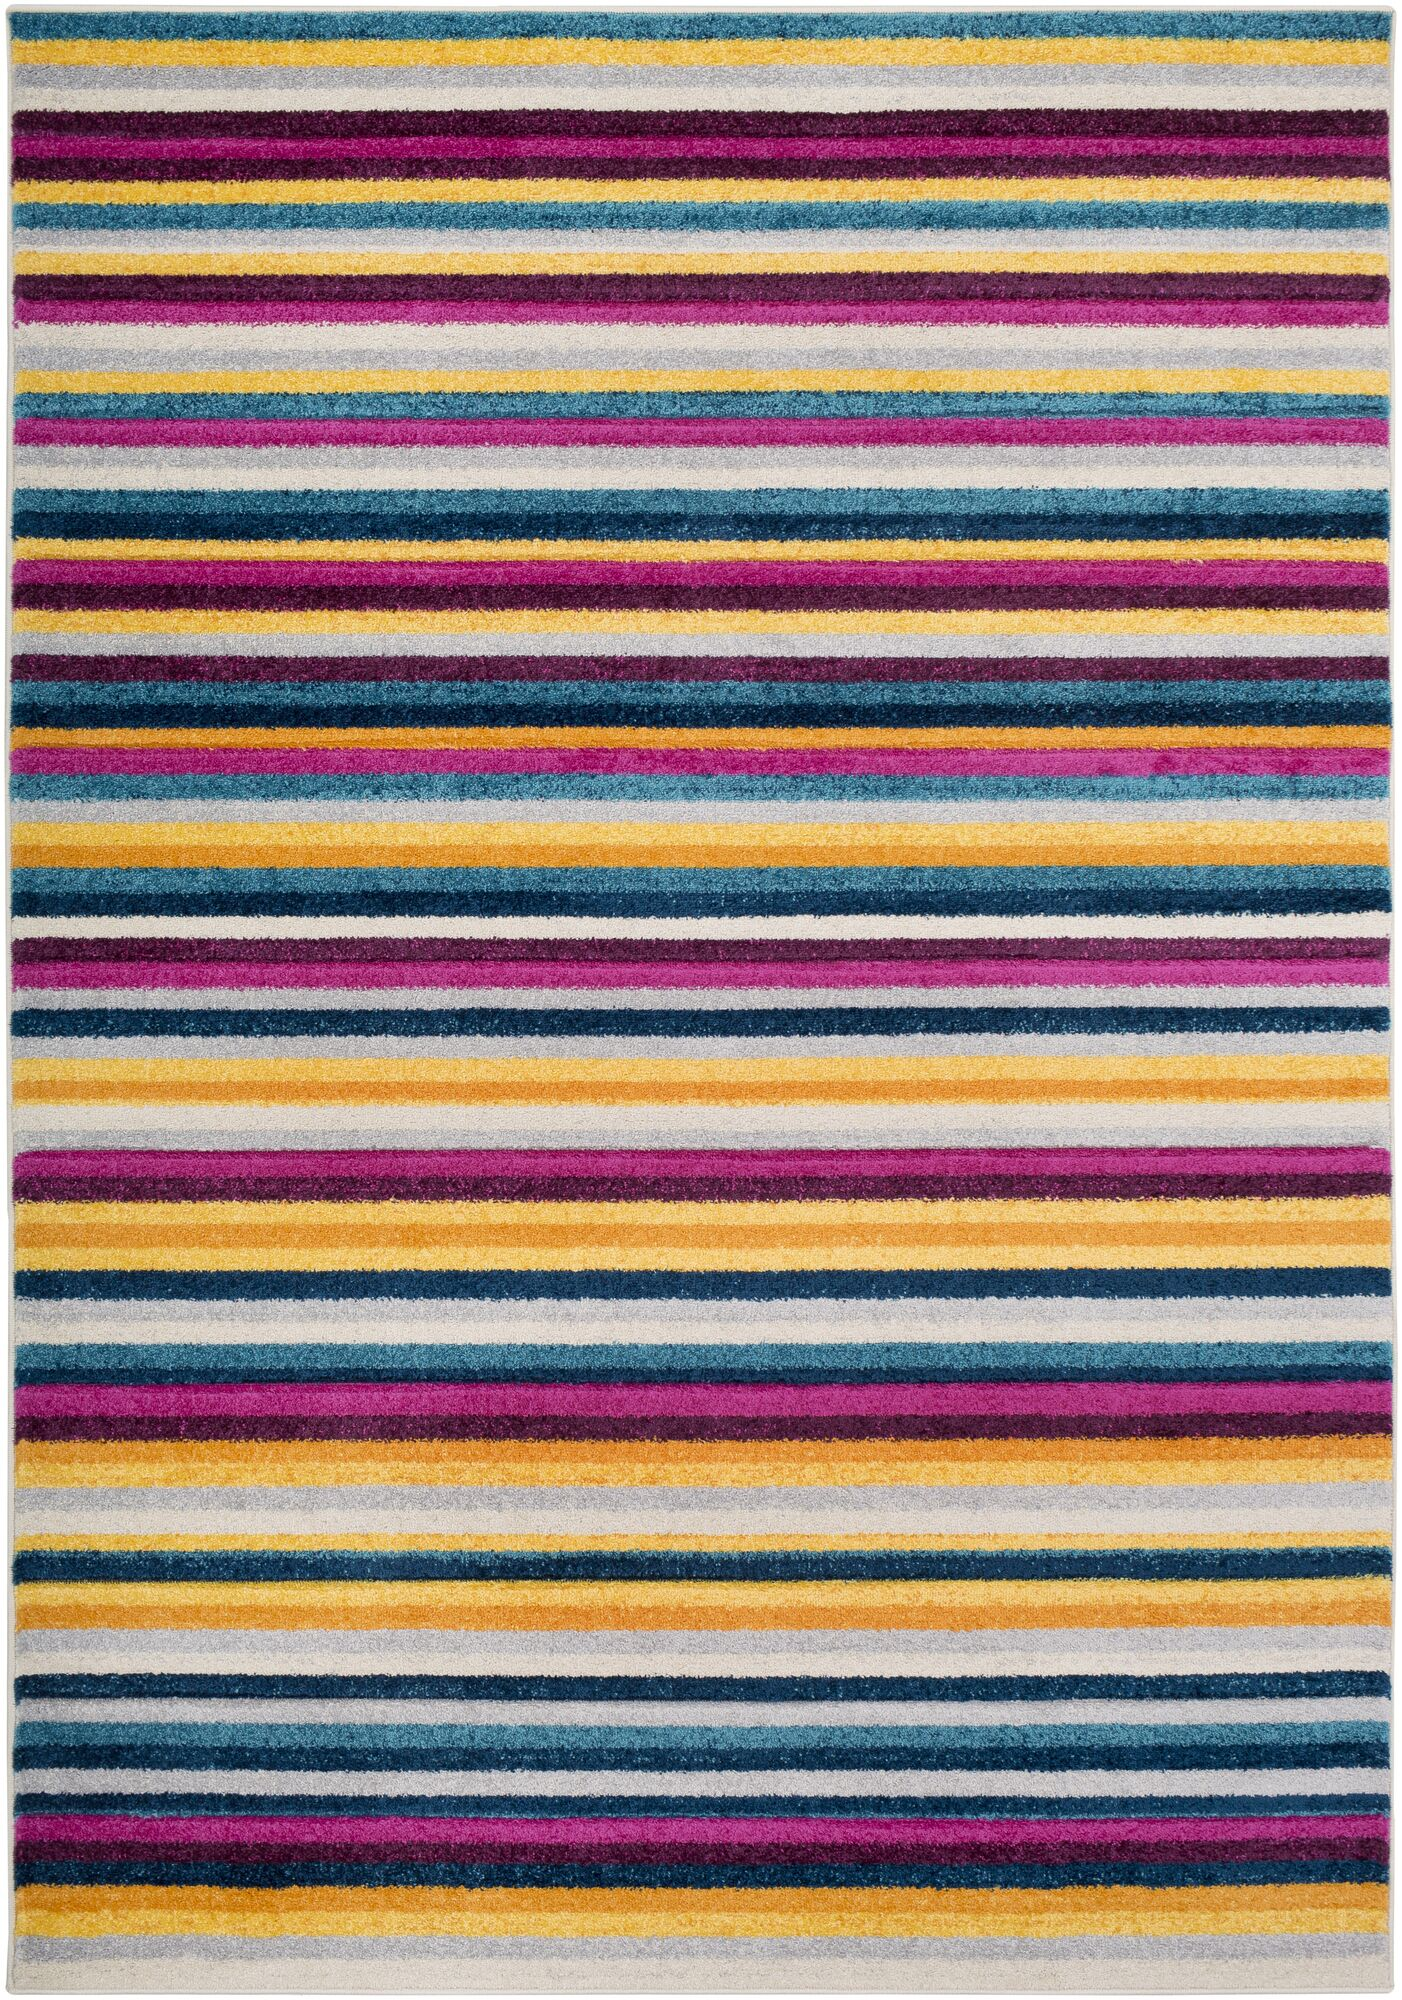 Avianna Modern Striped Yellow/Gray Area Rug Rug Size: Rectangle 7'10